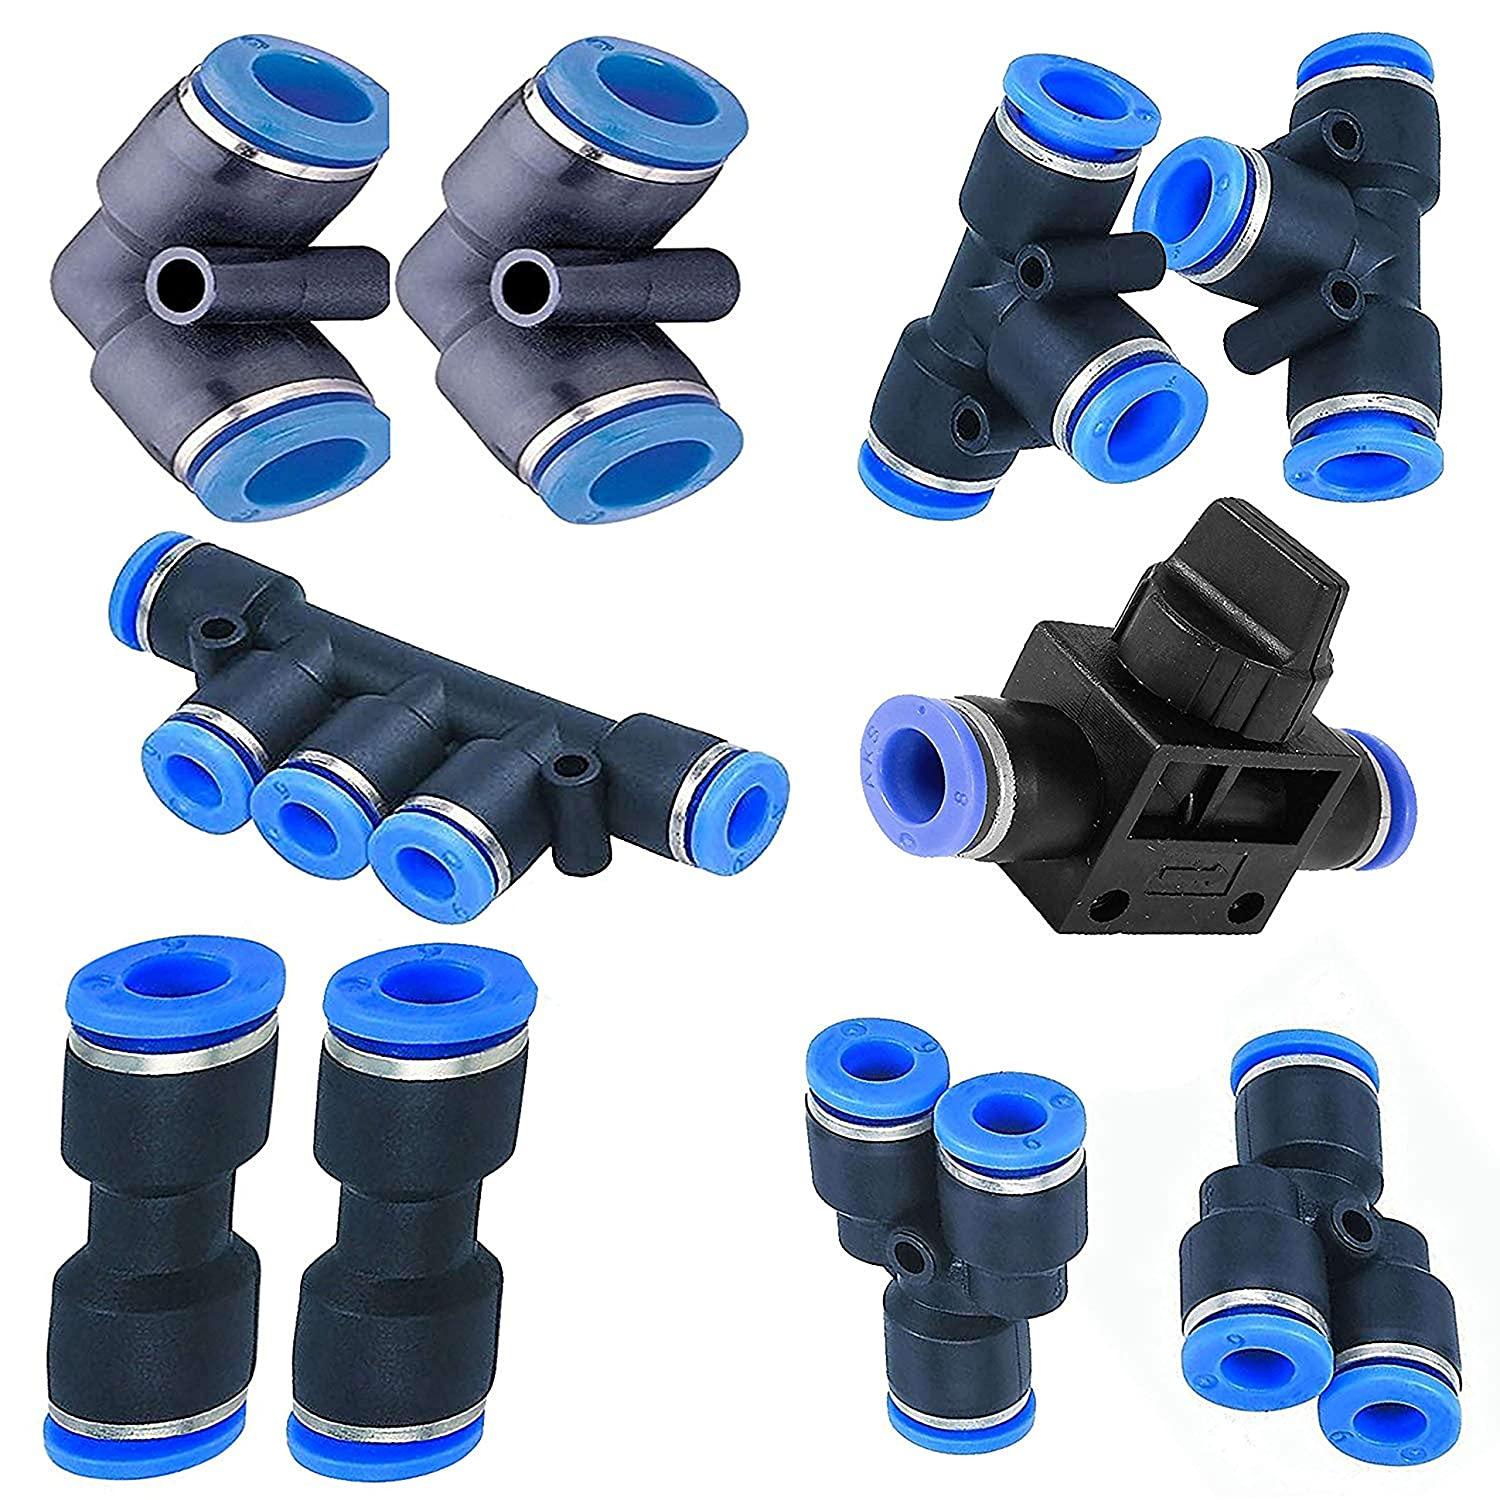 Utah Pneumatic 6mm od to 6mm Push To Connect Fittings pneumatic fittings  kit 2 Spliters+2 elbows+2 tee+2 Straight+1 Manifold+ Hand Valves Ultimate